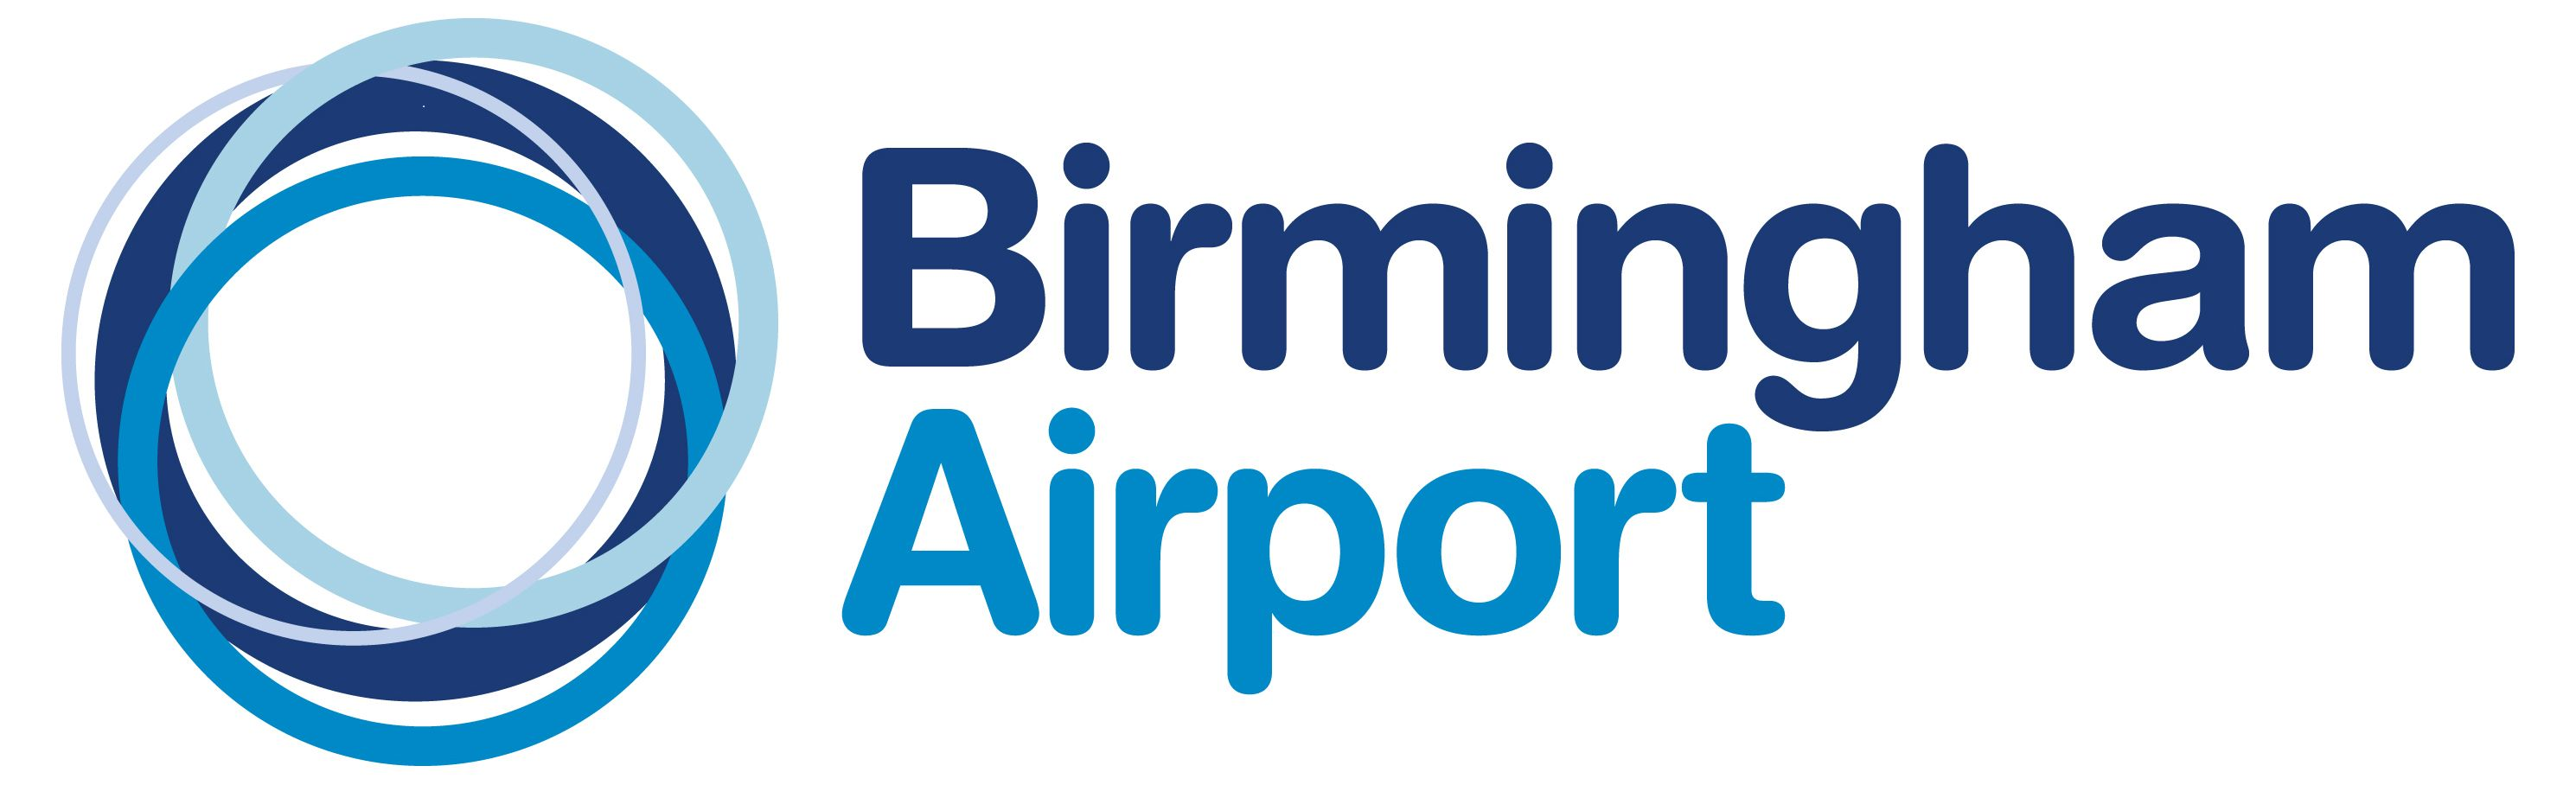 15m Terminal Expansion Plans For Birmingham International Airport Latest News Top Stories Travel The Asian Today Online